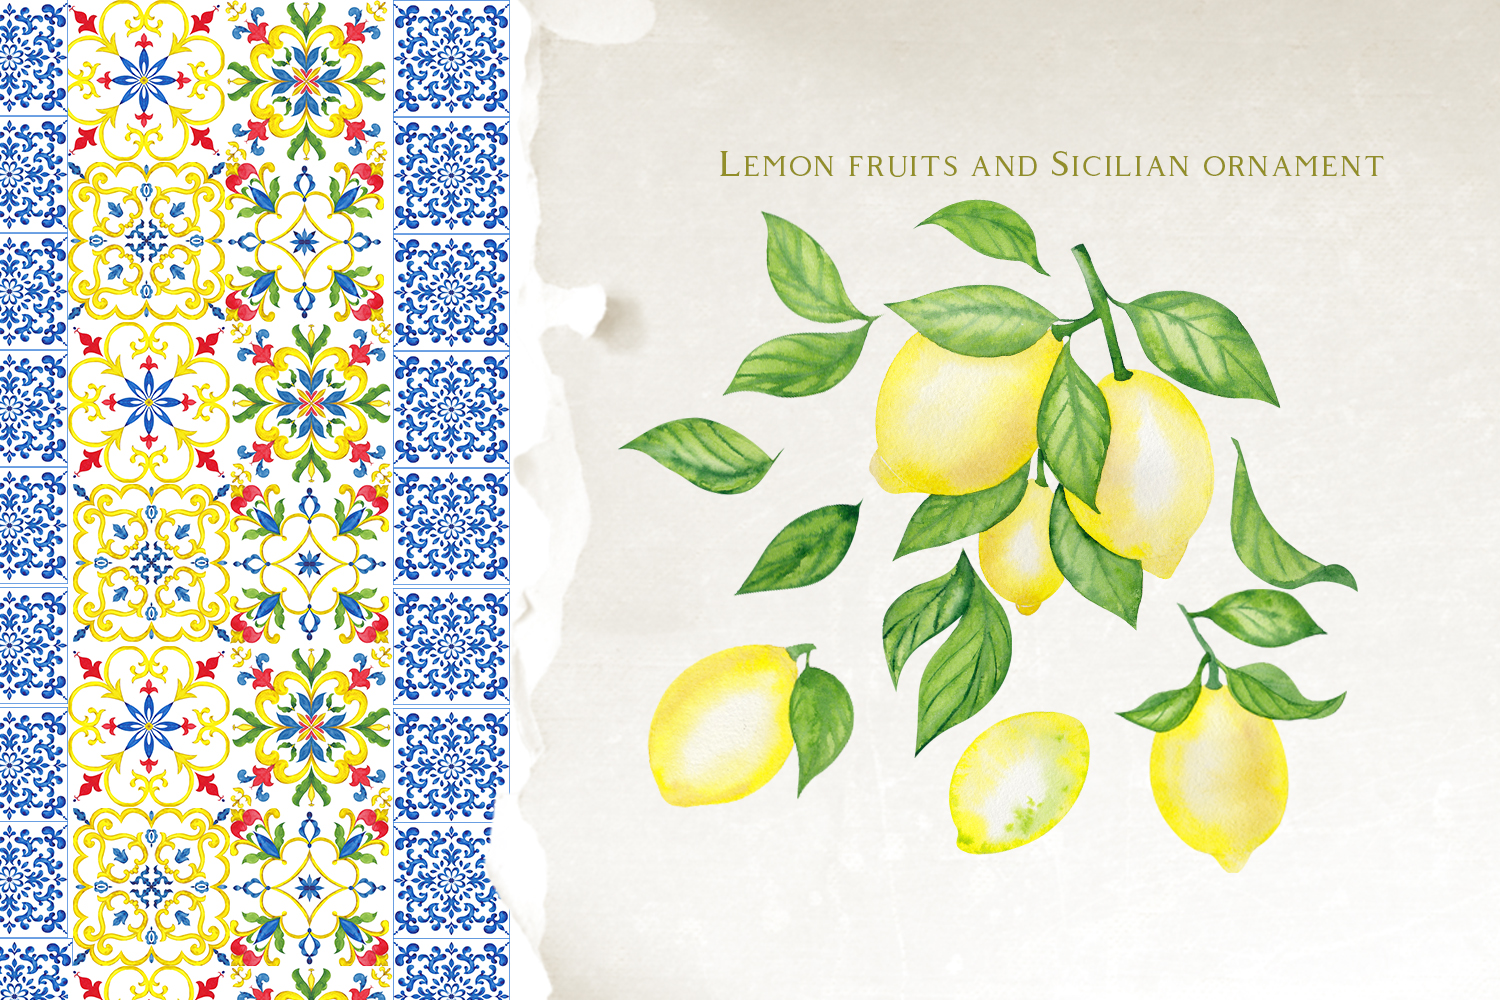 Sicily. Ornament and fruits example image 5